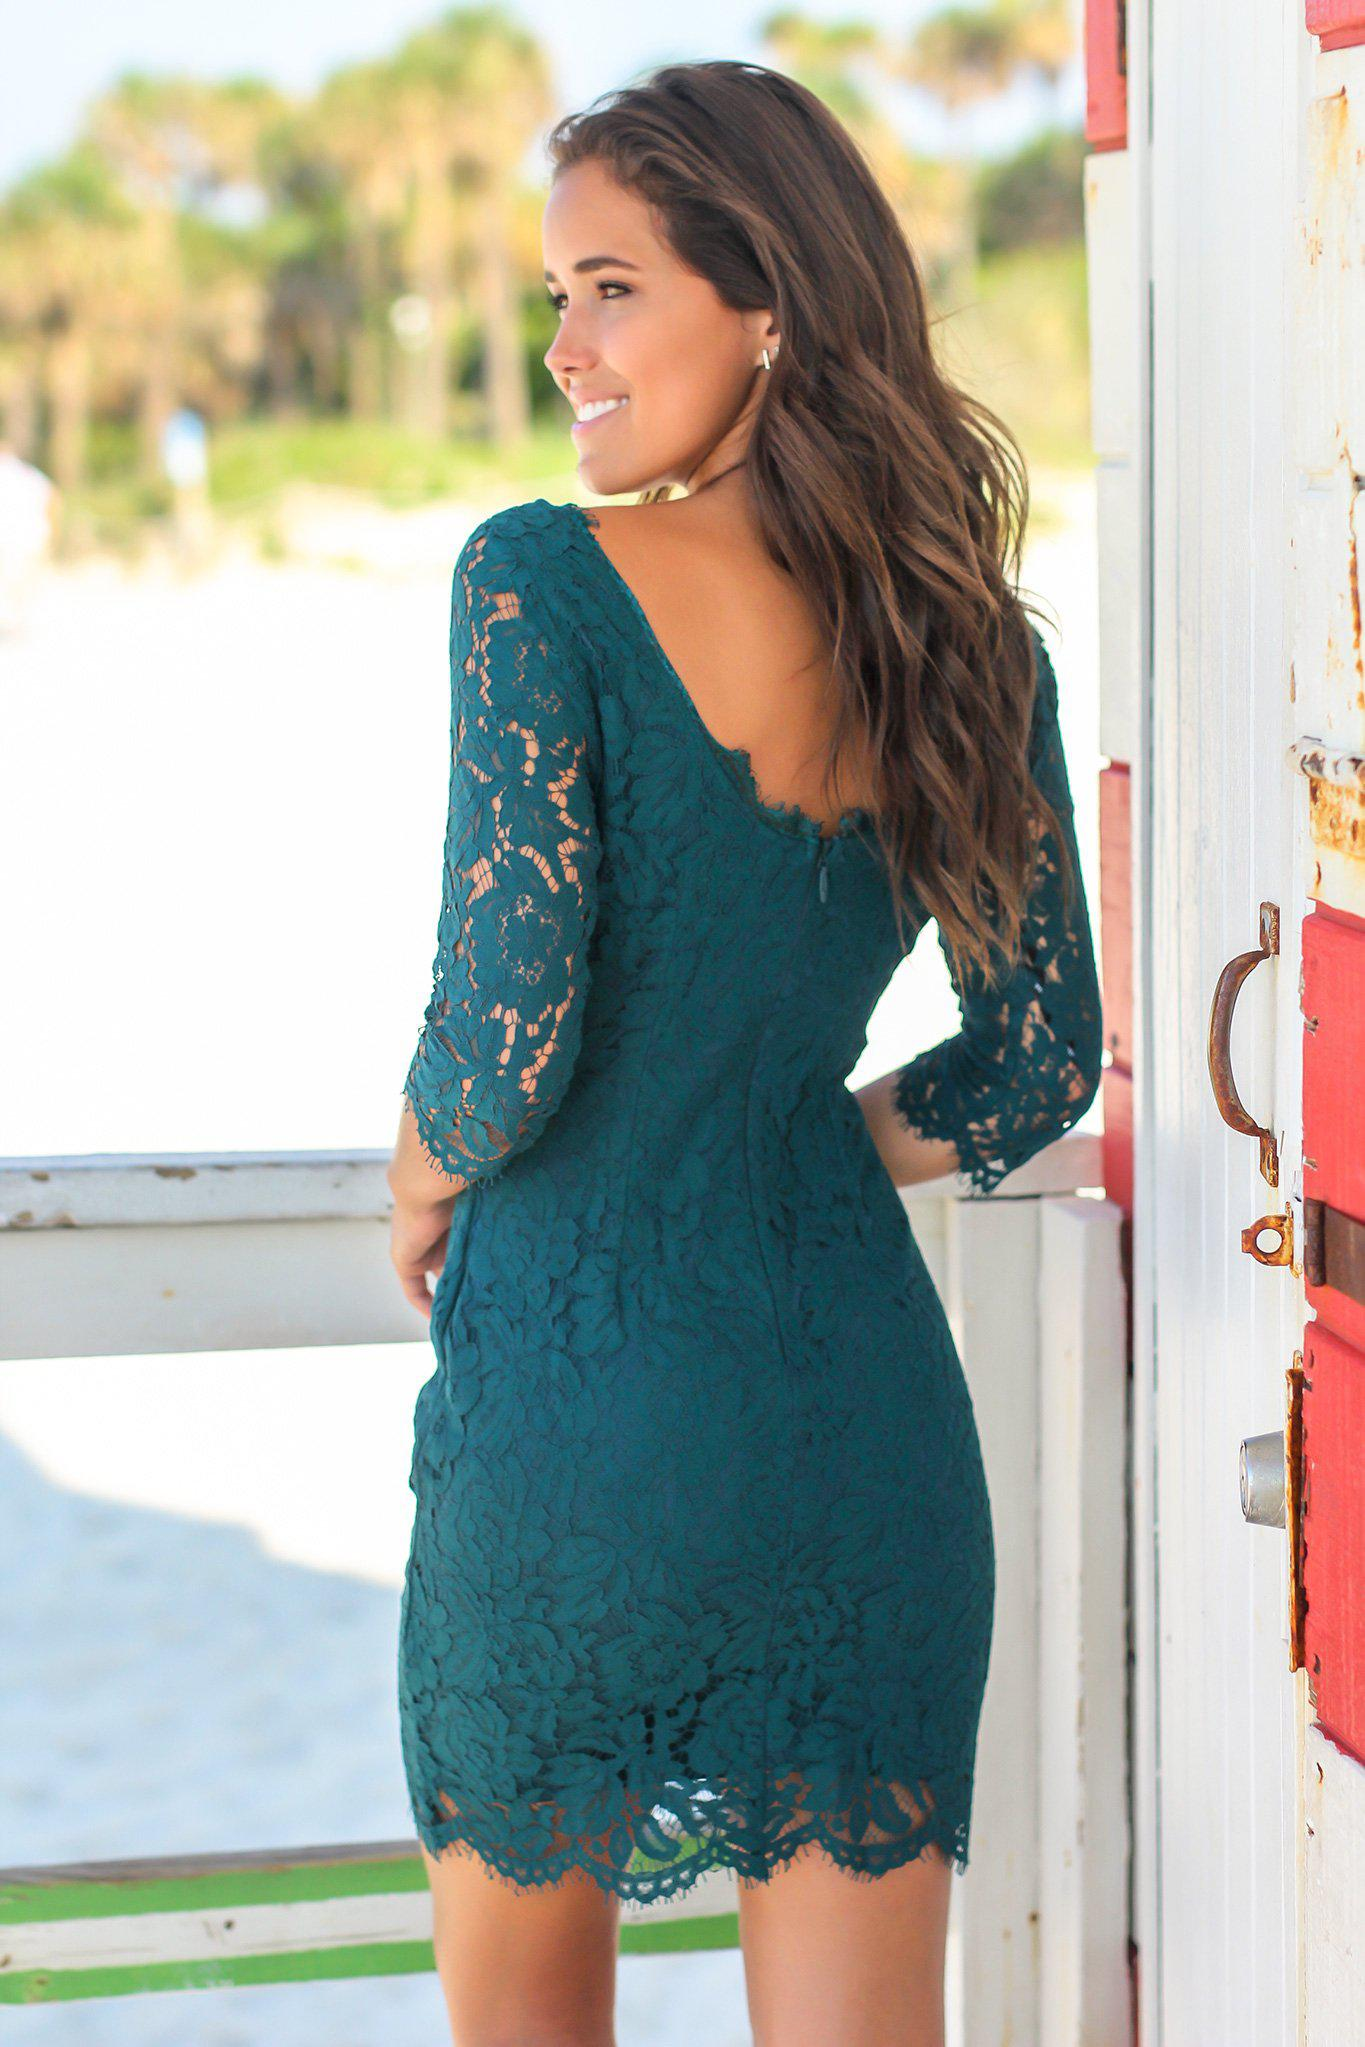 Emerald Teal Lace Short Dress with 3.4 Sleeves